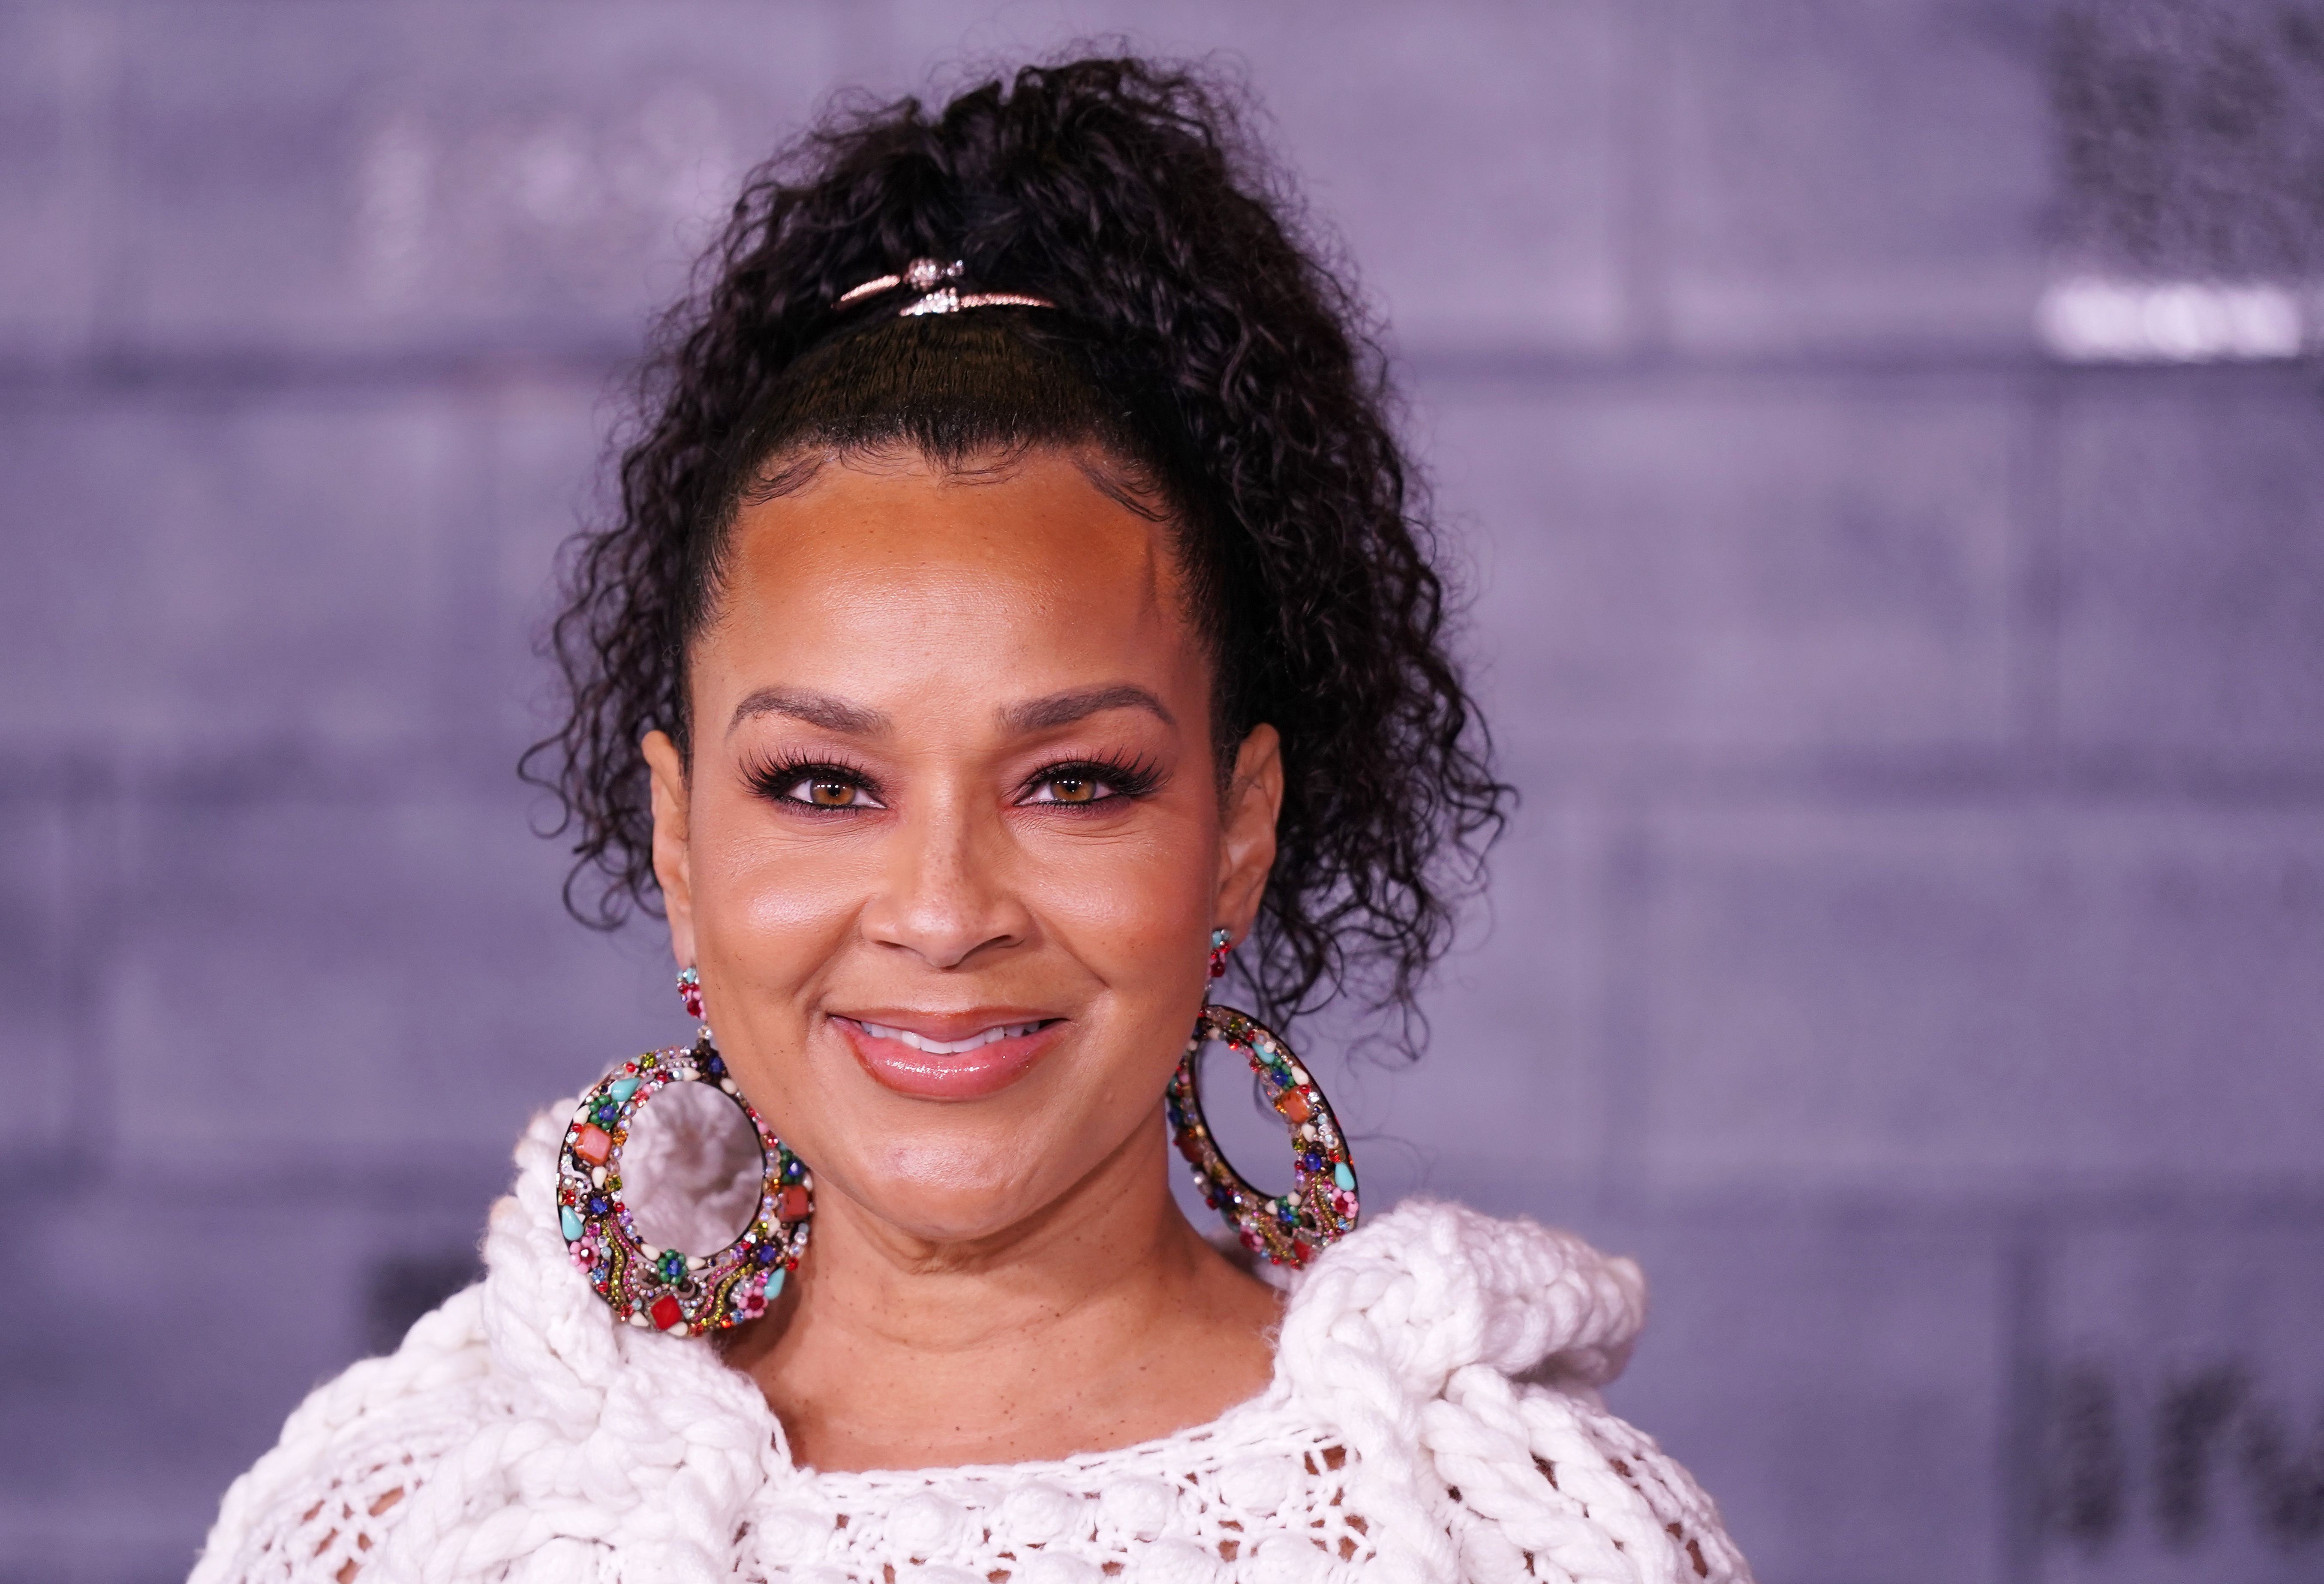 """LisaRaye McCoy during the world premiere of """"Bad Boys for Life"""" at TCL Chinese Theatre on January 14, 2020 in Hollywood, California. 